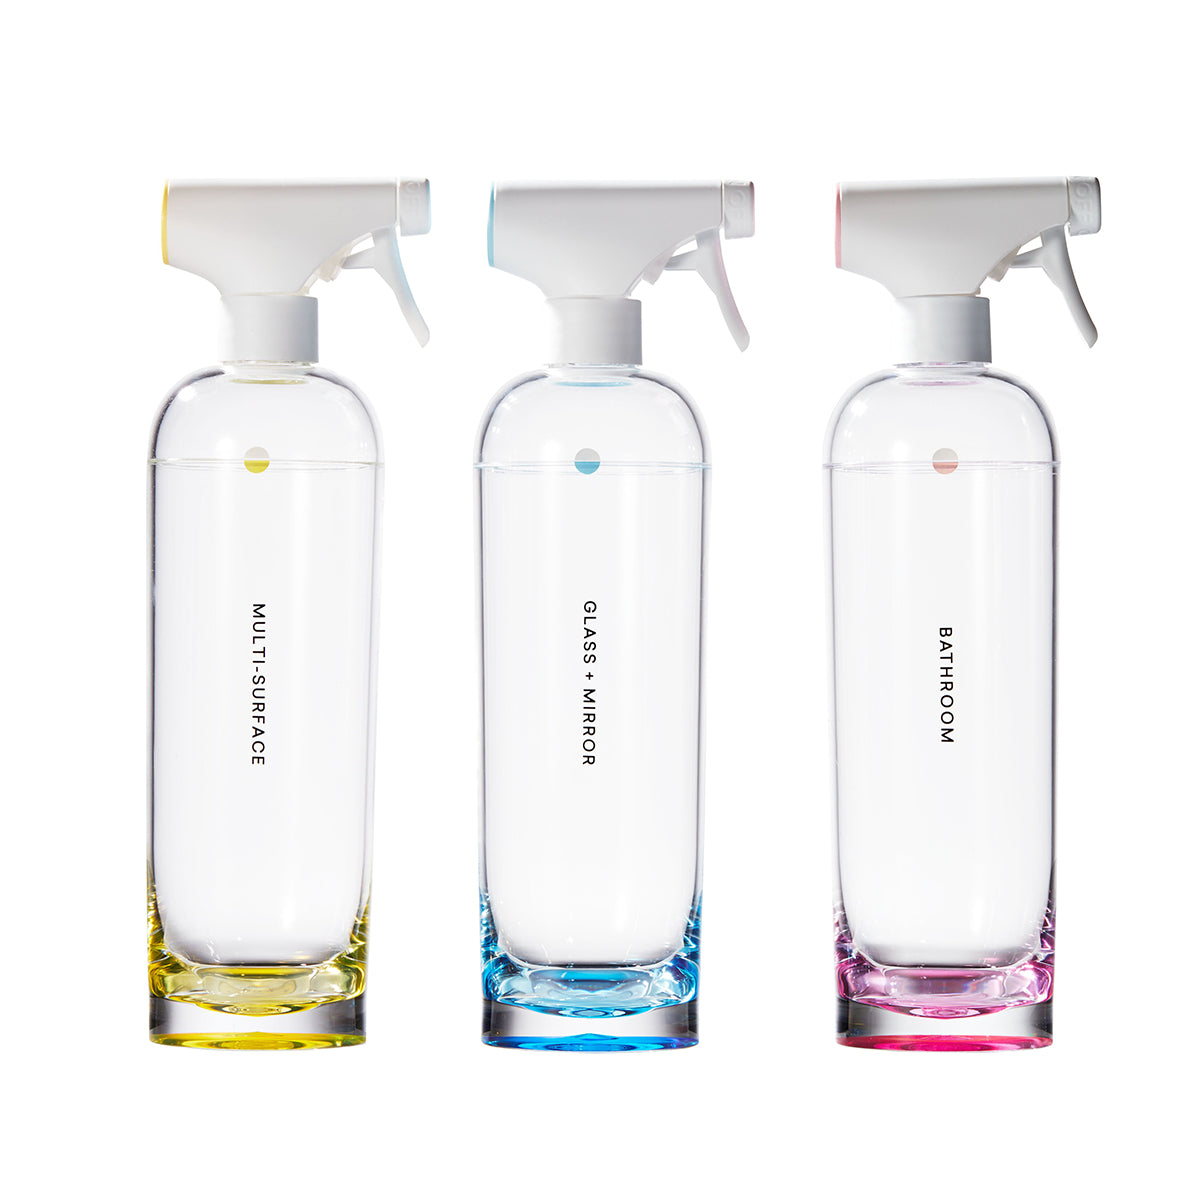 Three cleaning Forever Bottles against white background